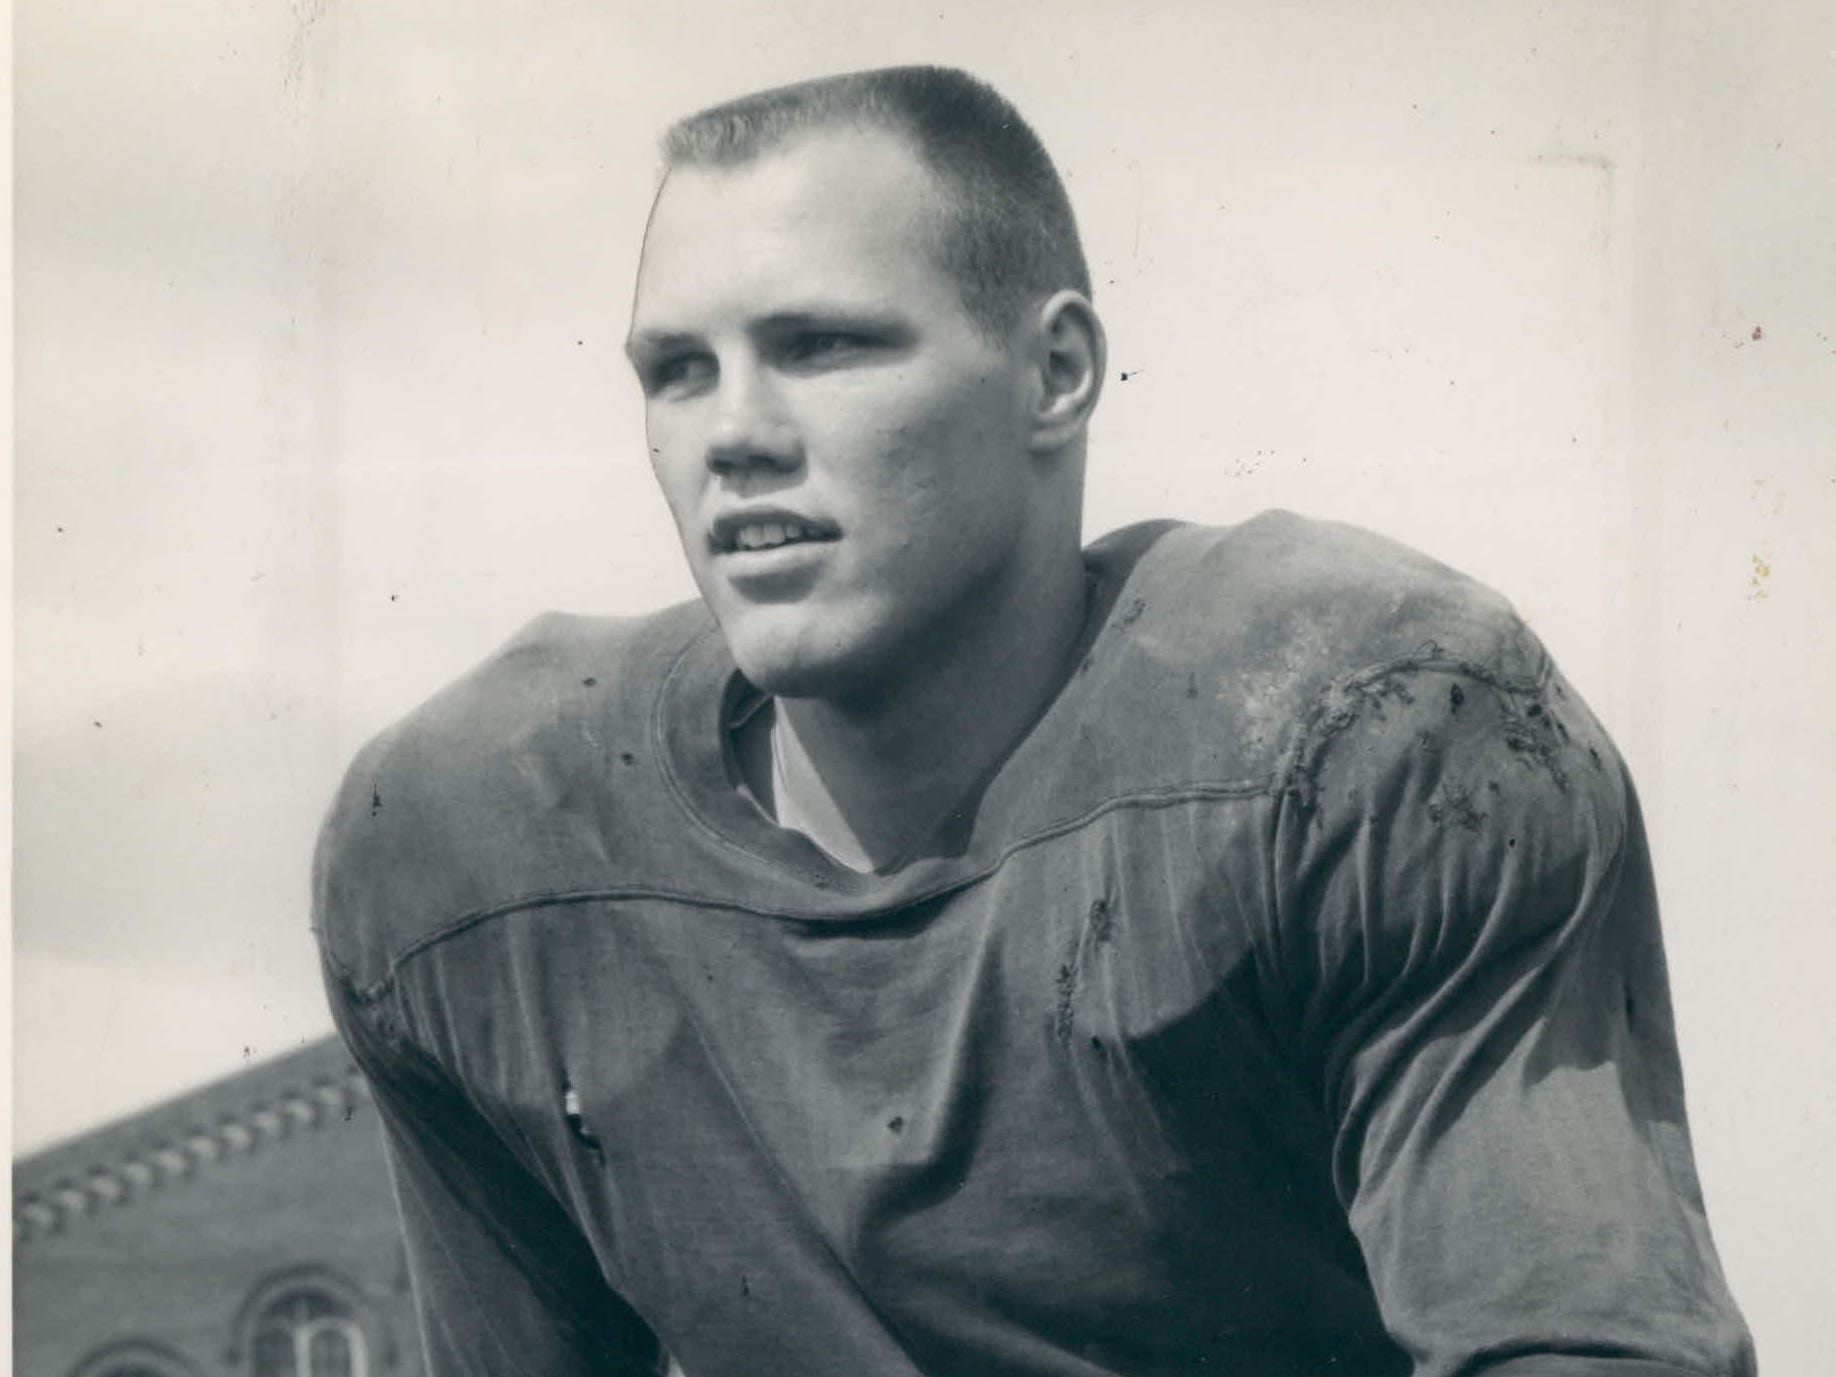 Former Tigers catcher Bill Freehan was a star football player at Royal Oak.